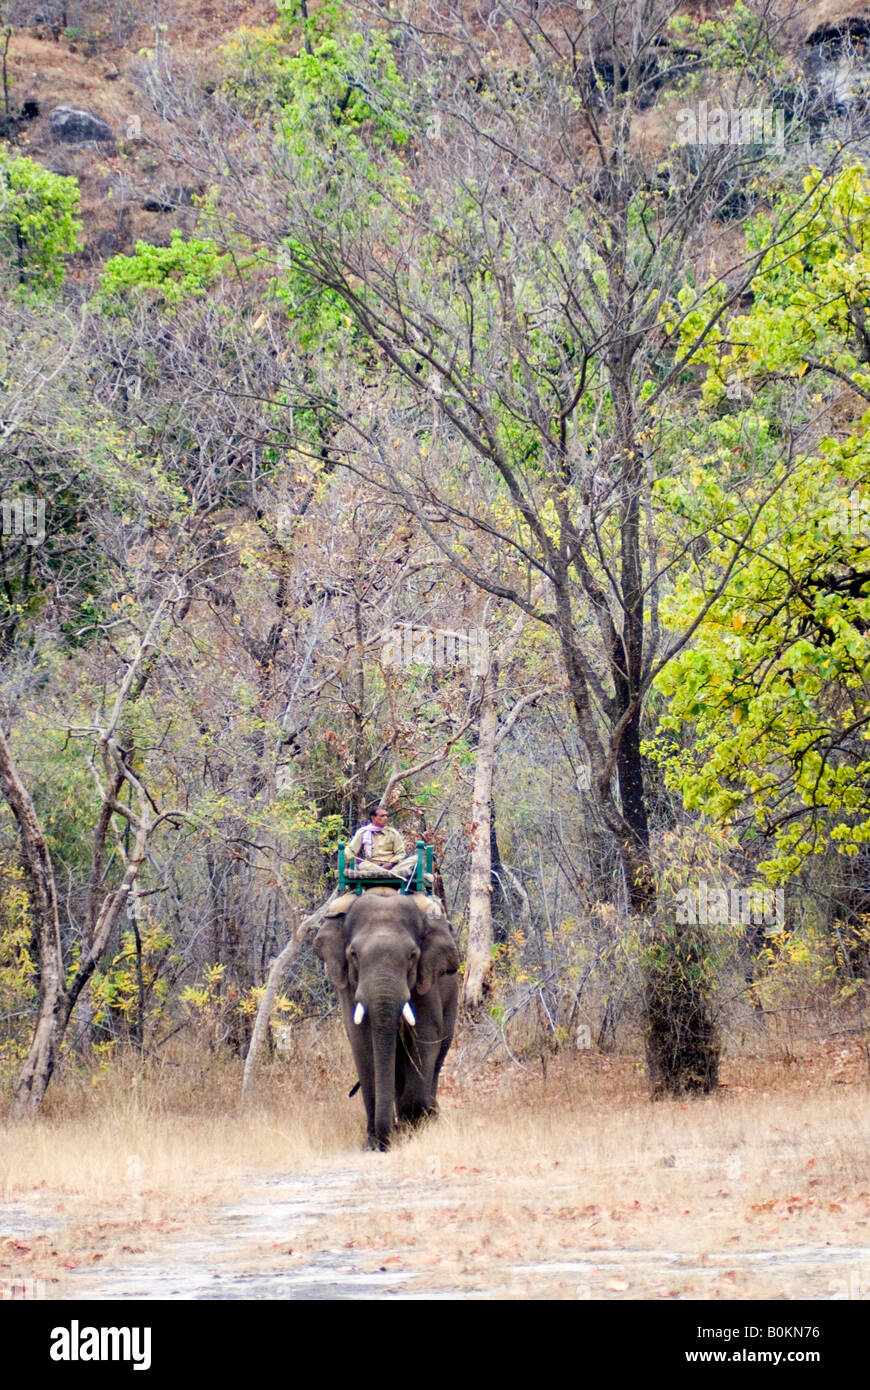 Elephant and Mahoot emerge from Sal Forest - Stock Image